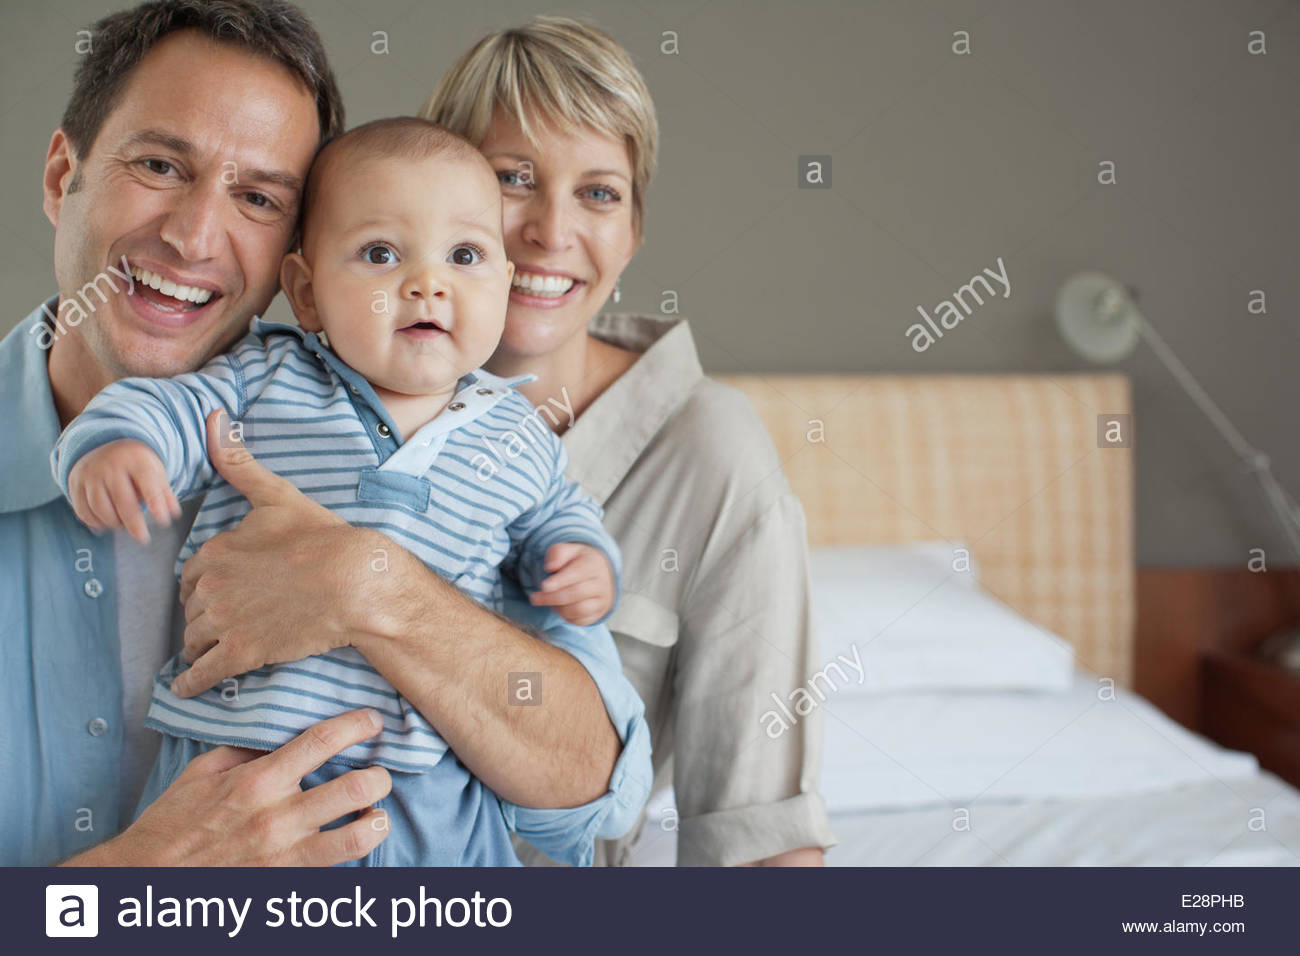 Smiling mother and father with son - Stock Image